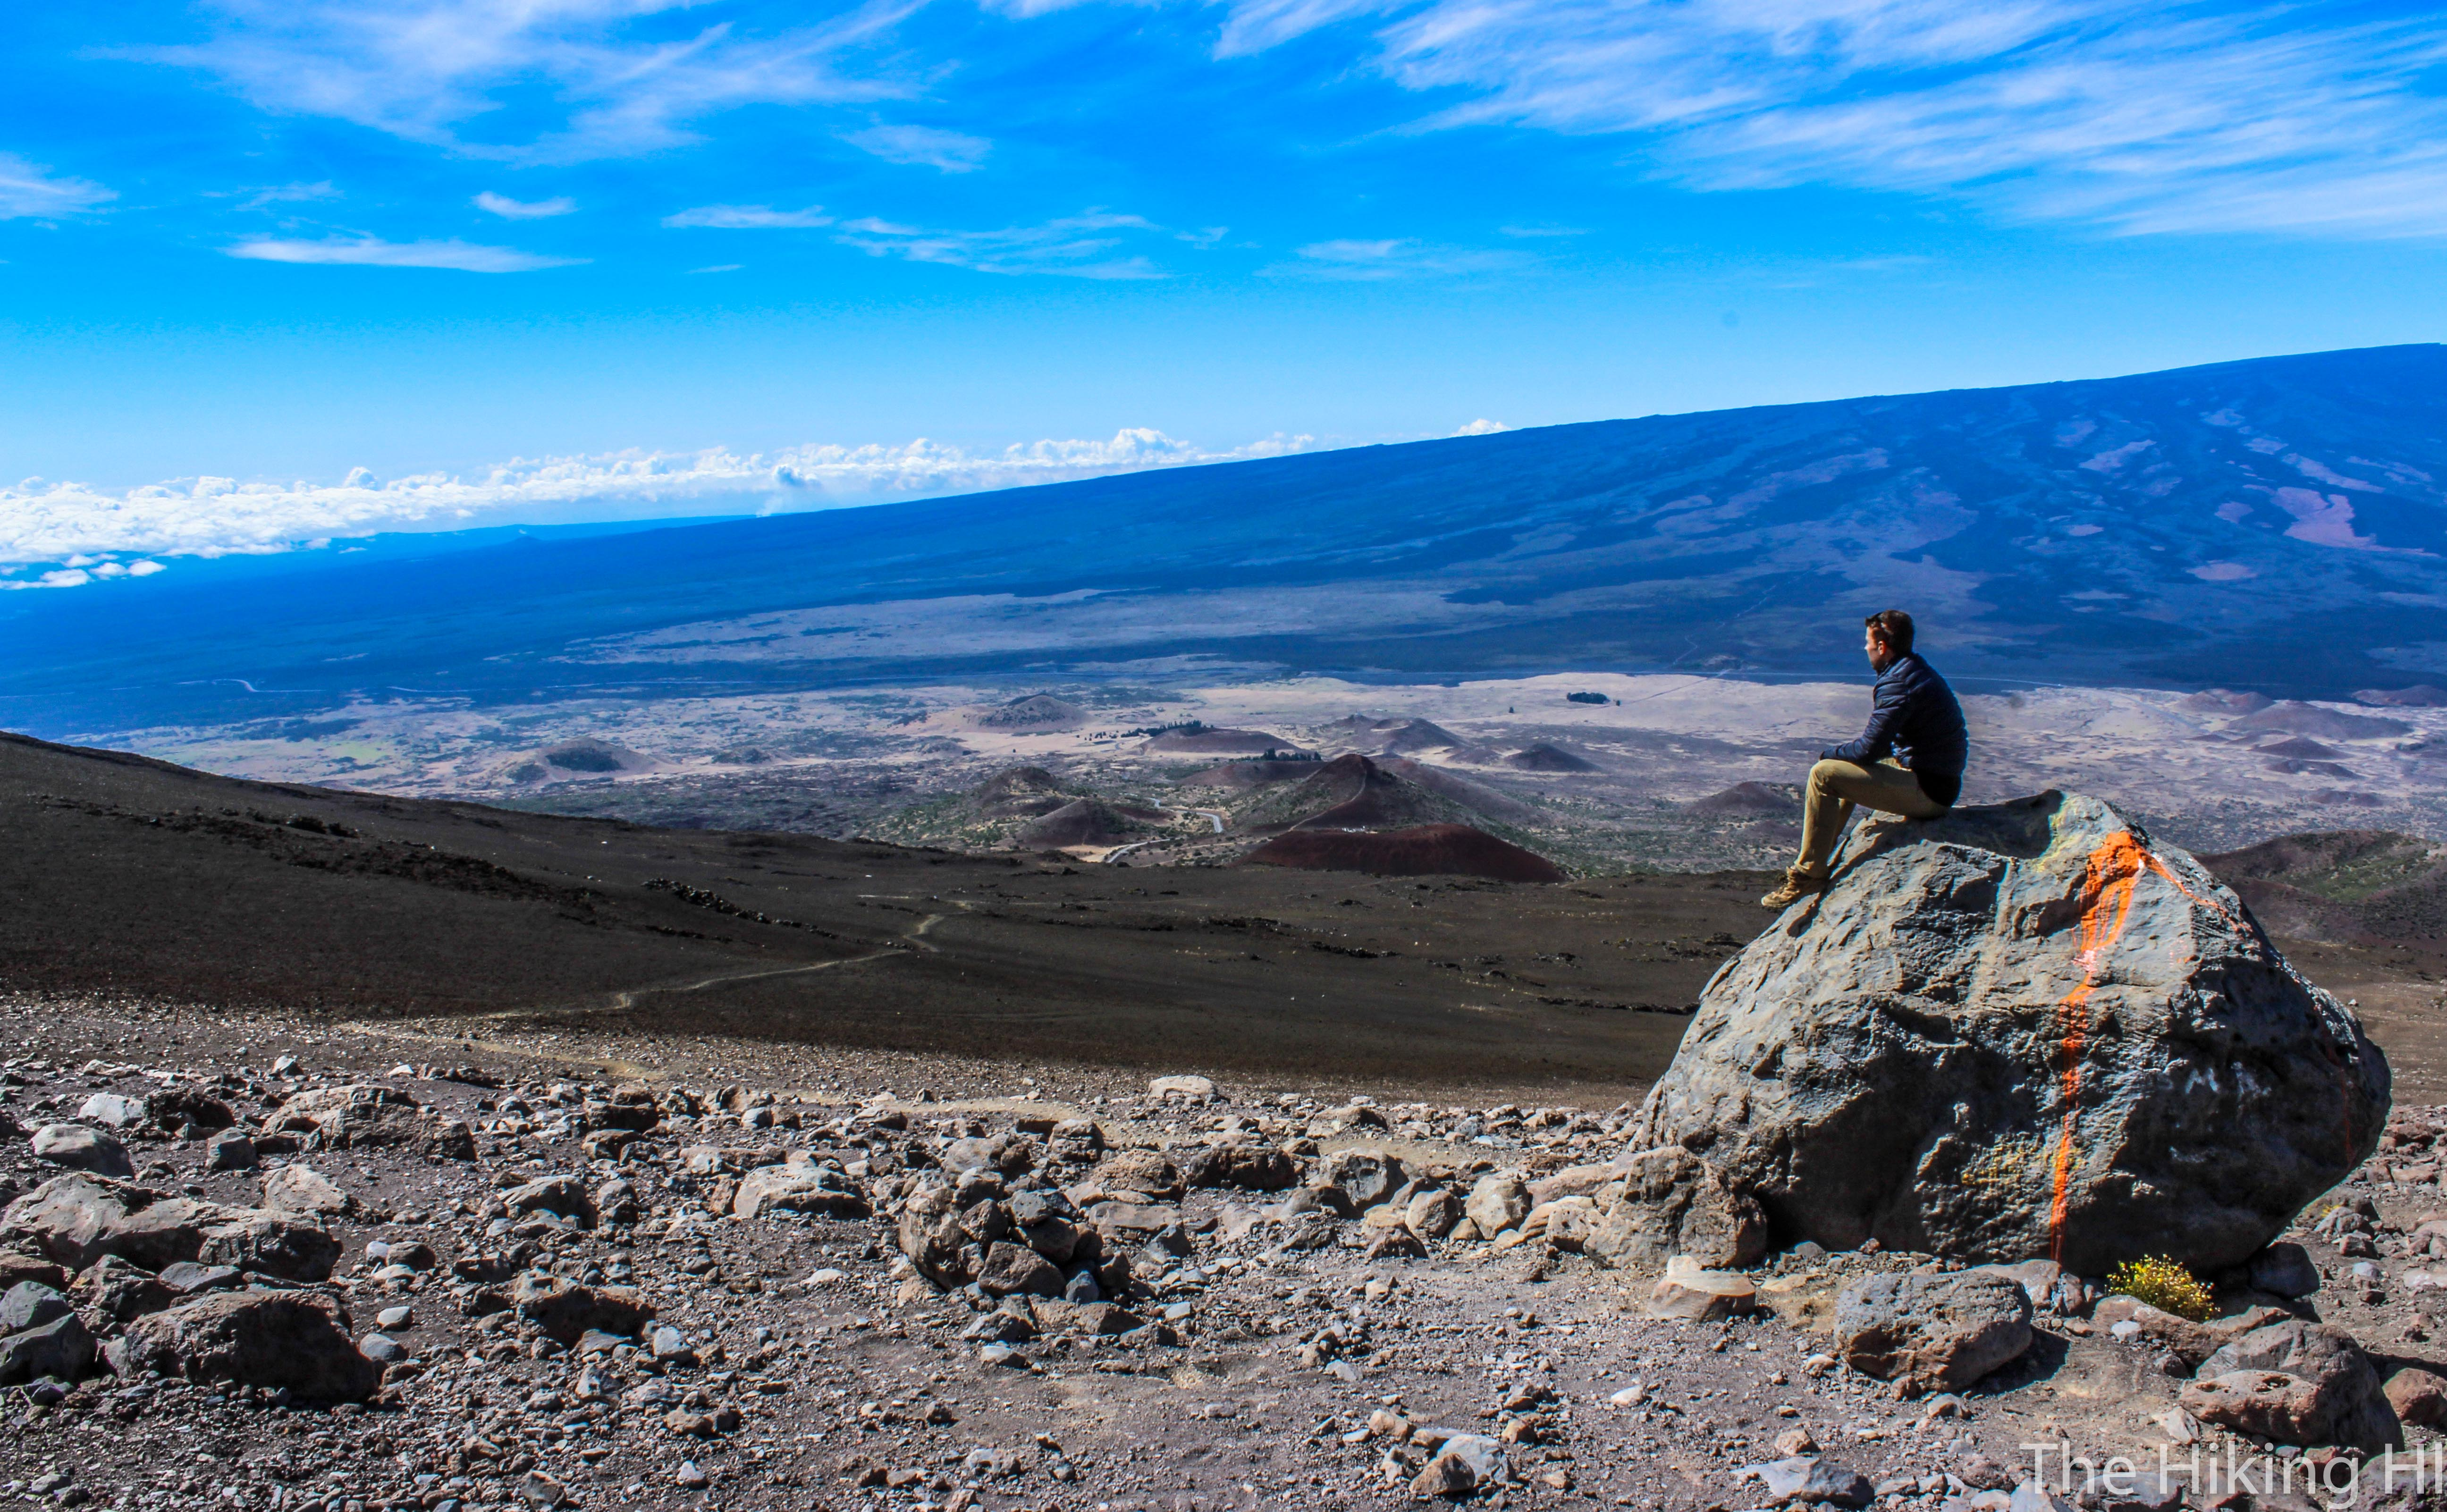 Hiking to the Top of Hawaii